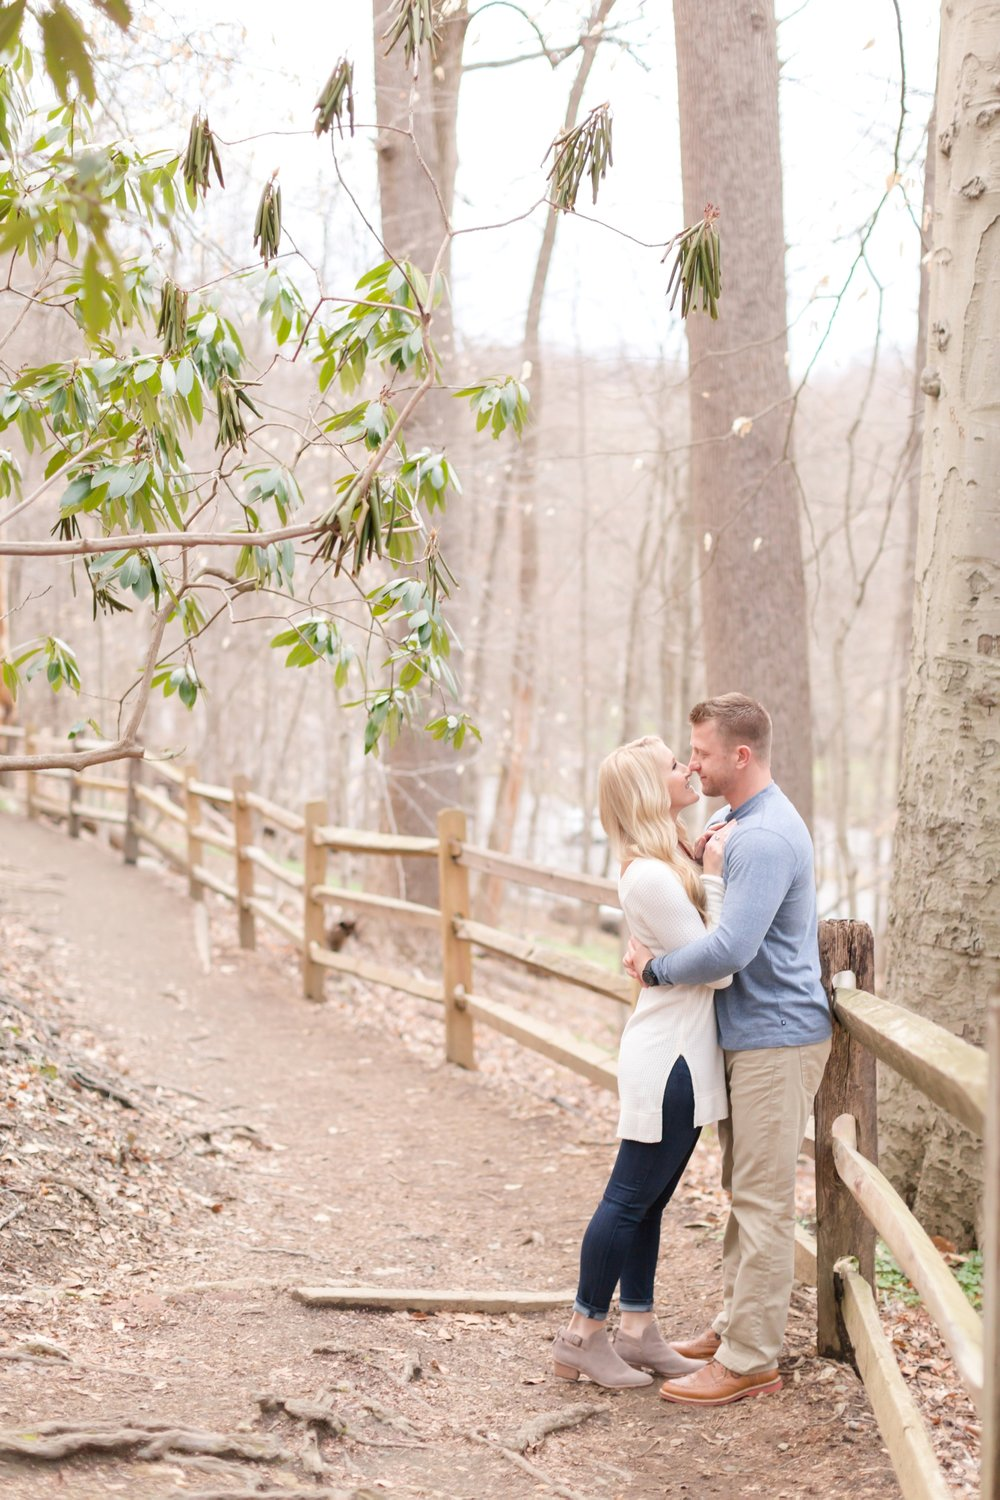 Kristine & Joe Engagement-319_anna grace photography baltimore maryland engagement and wedding photographer patapsco state park engagement photo.jpg